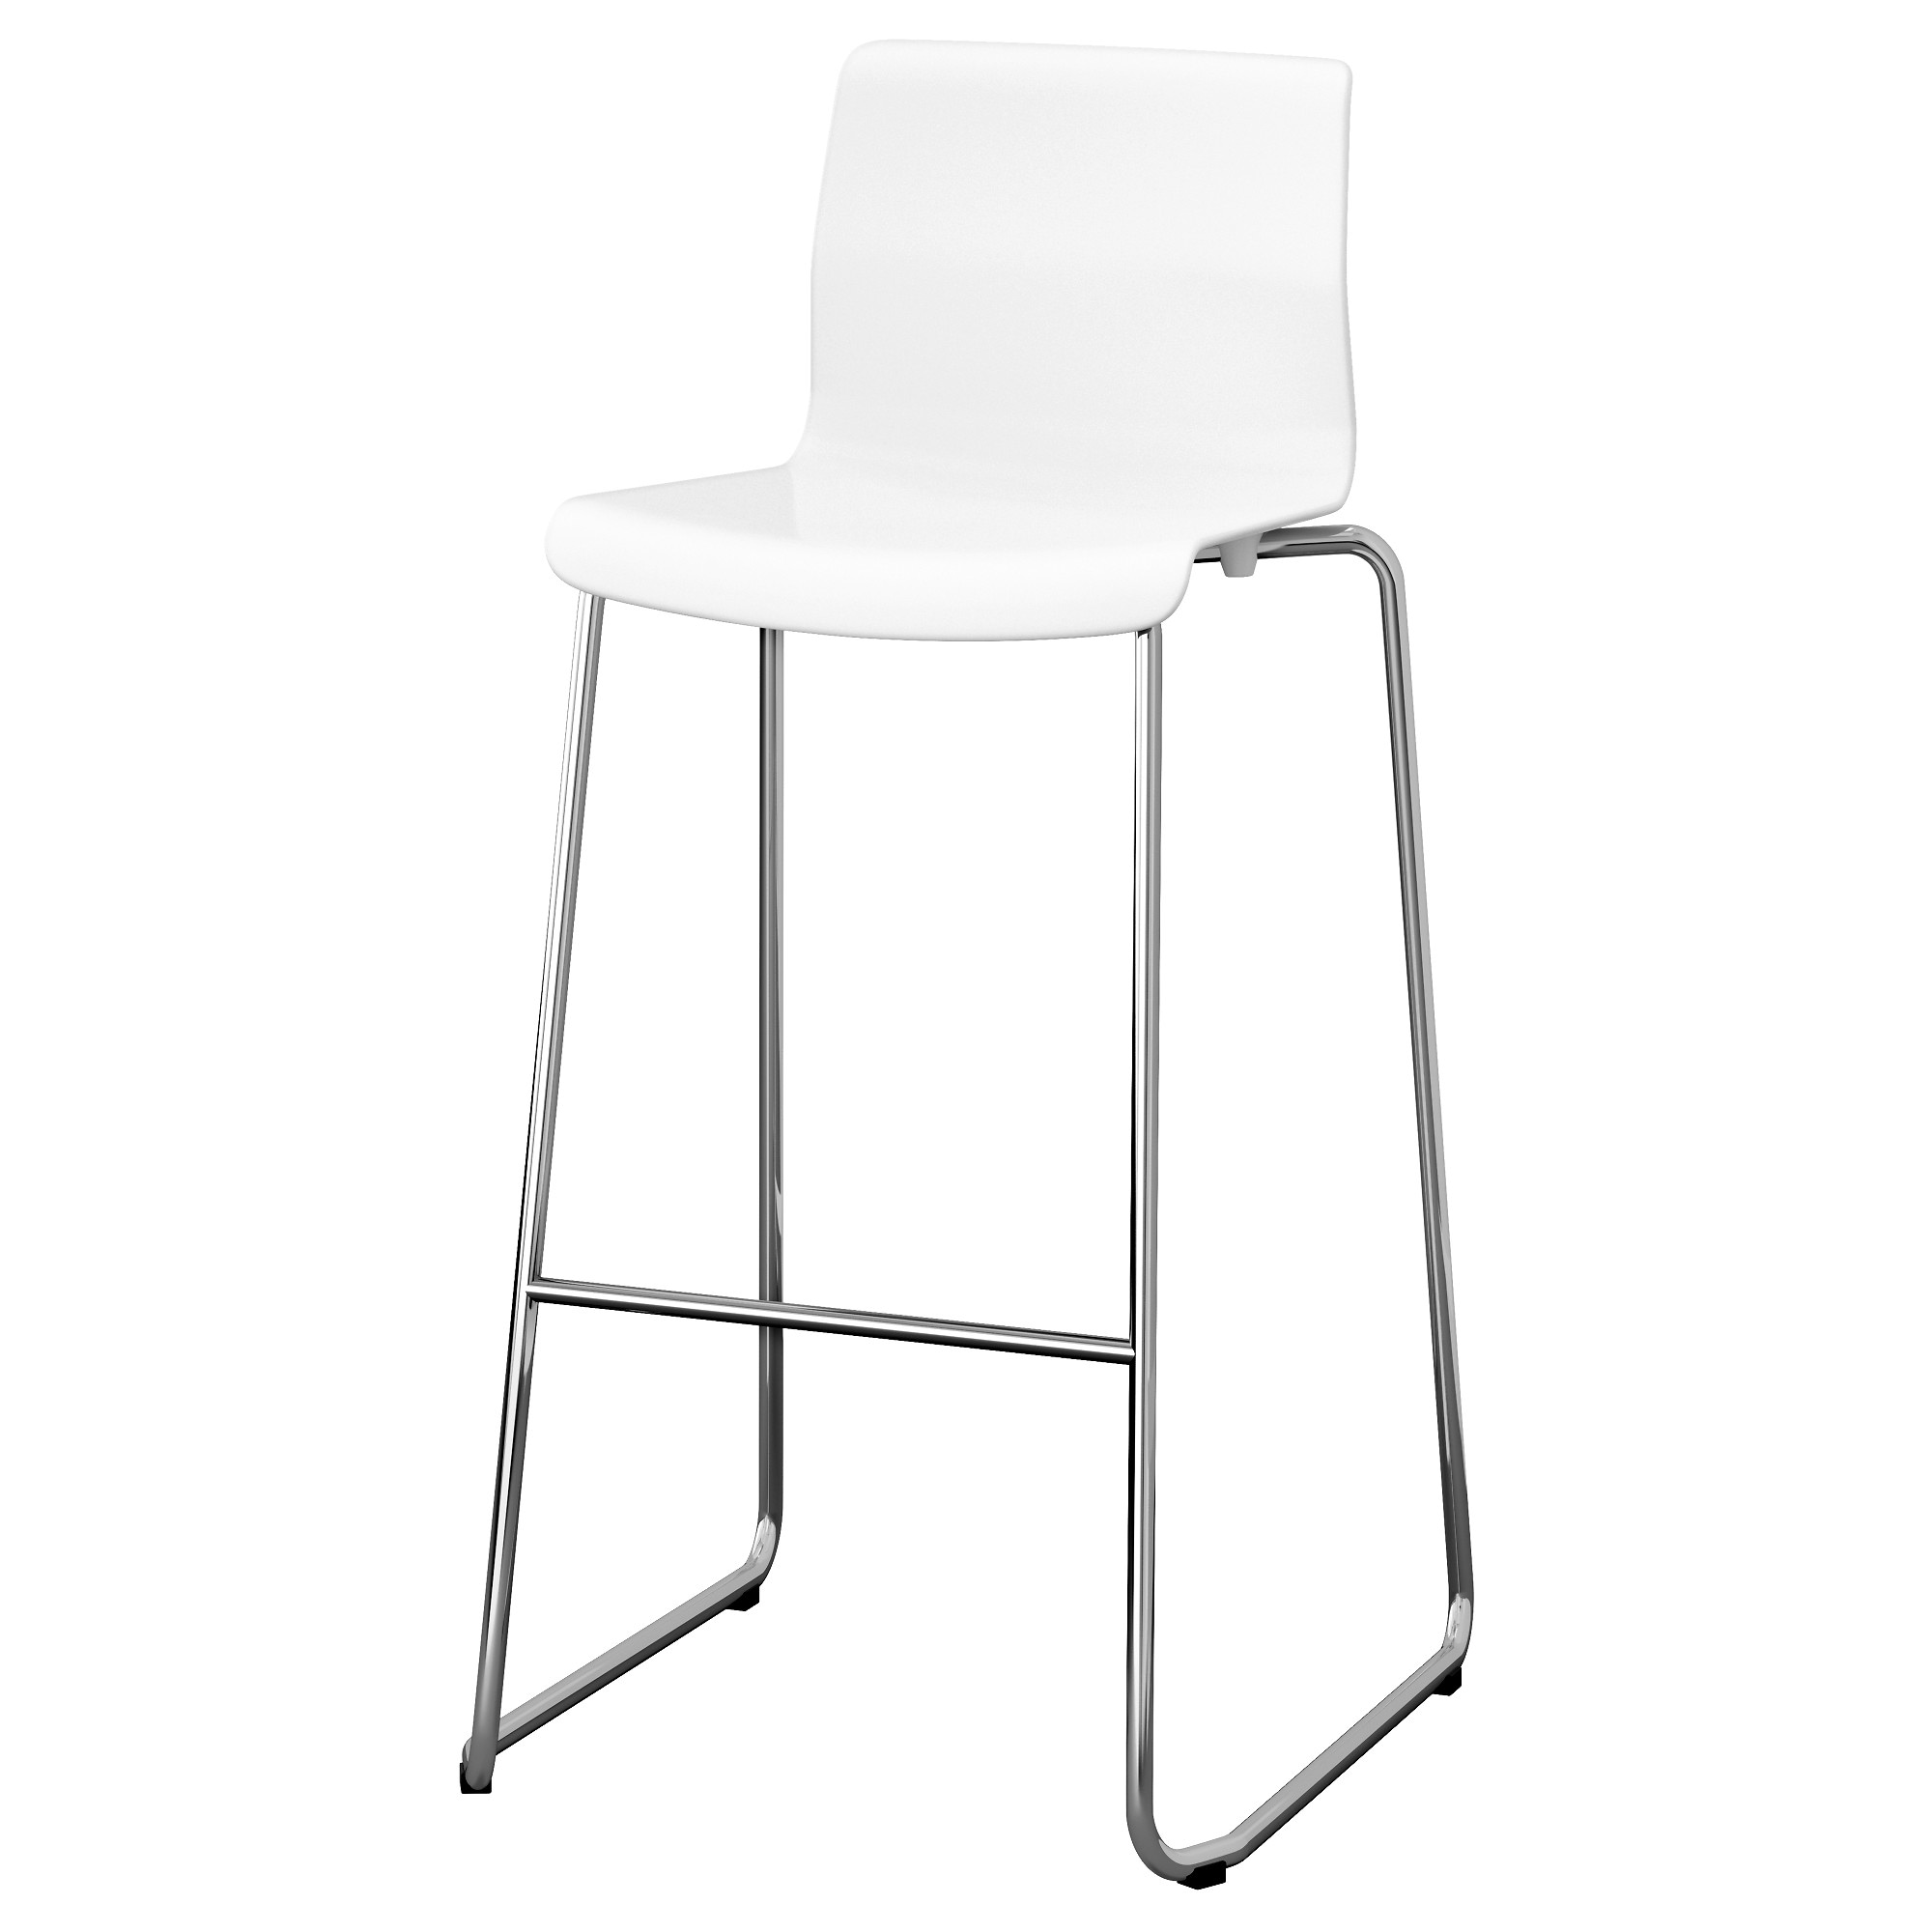 sc 1 st  Ikea & GLENN Bar stool - 30 3/8